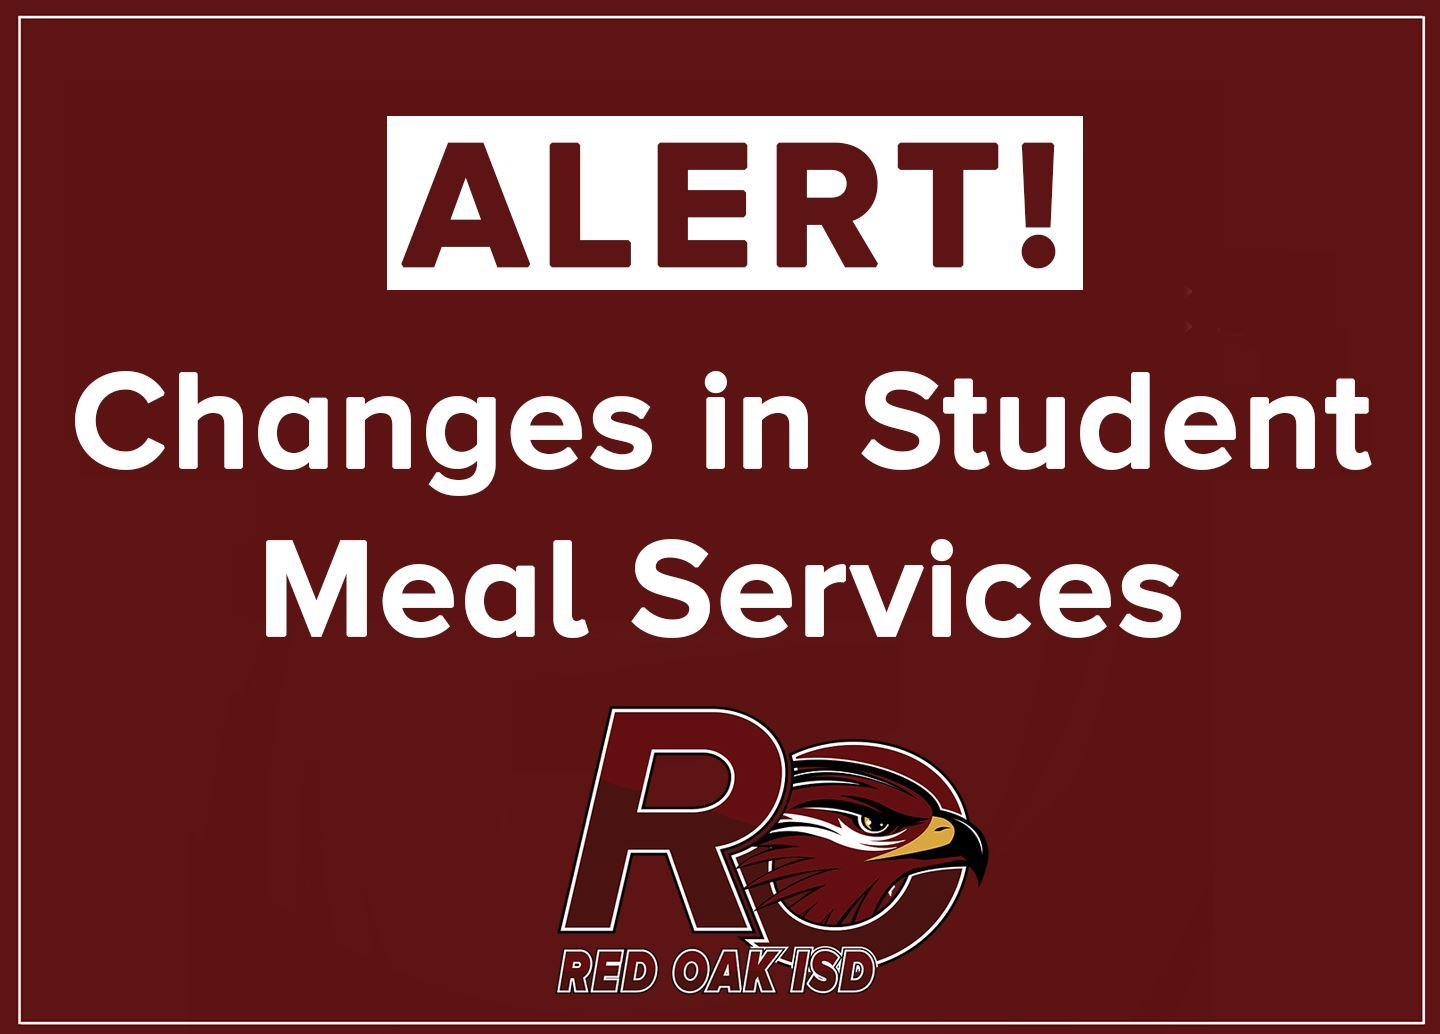 ROISD changes student meal service